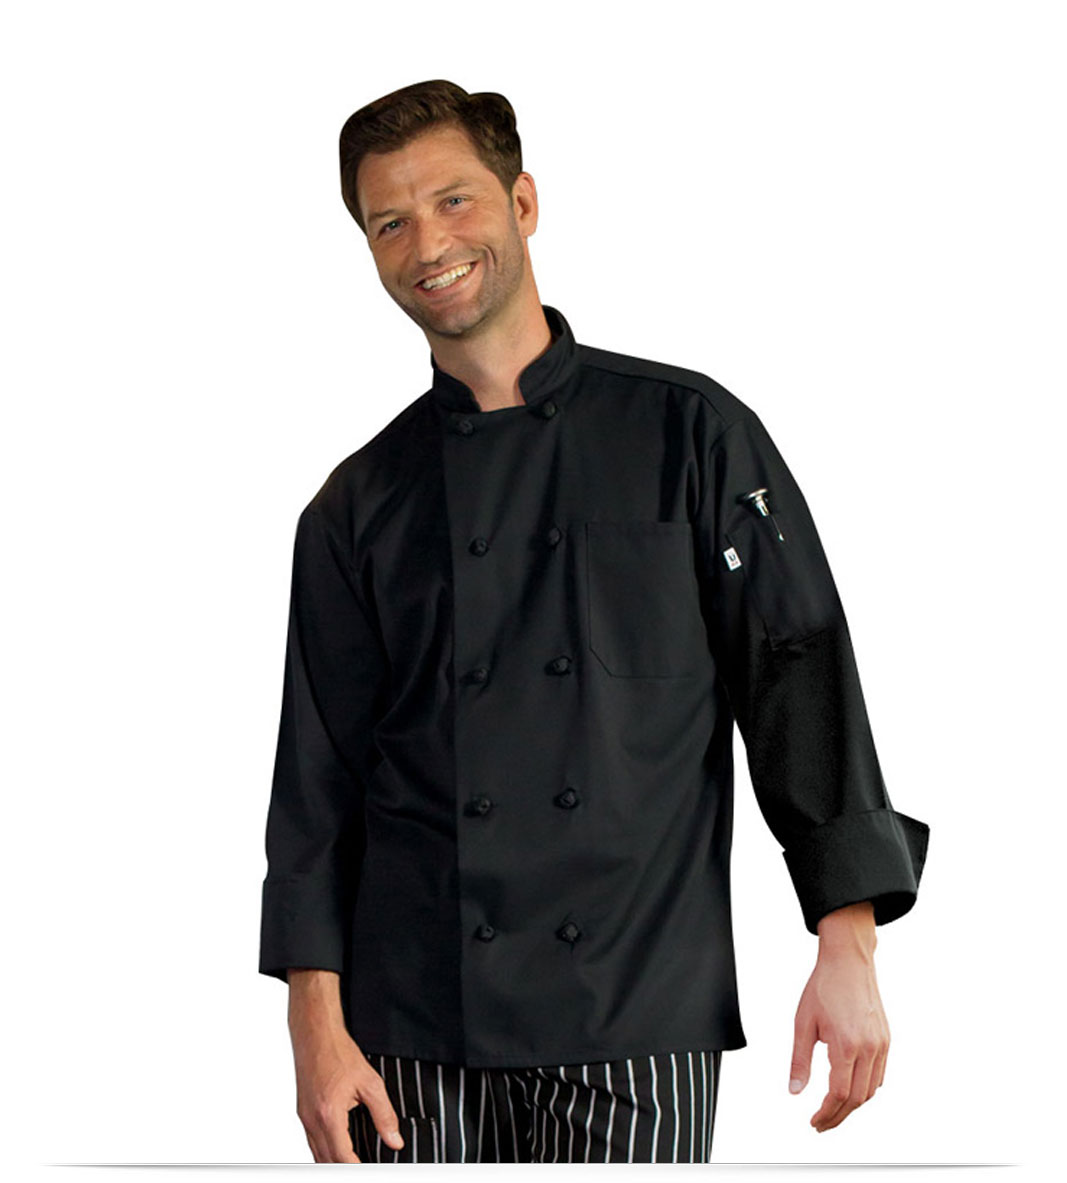 Embroidered Ladies Chef Jacket